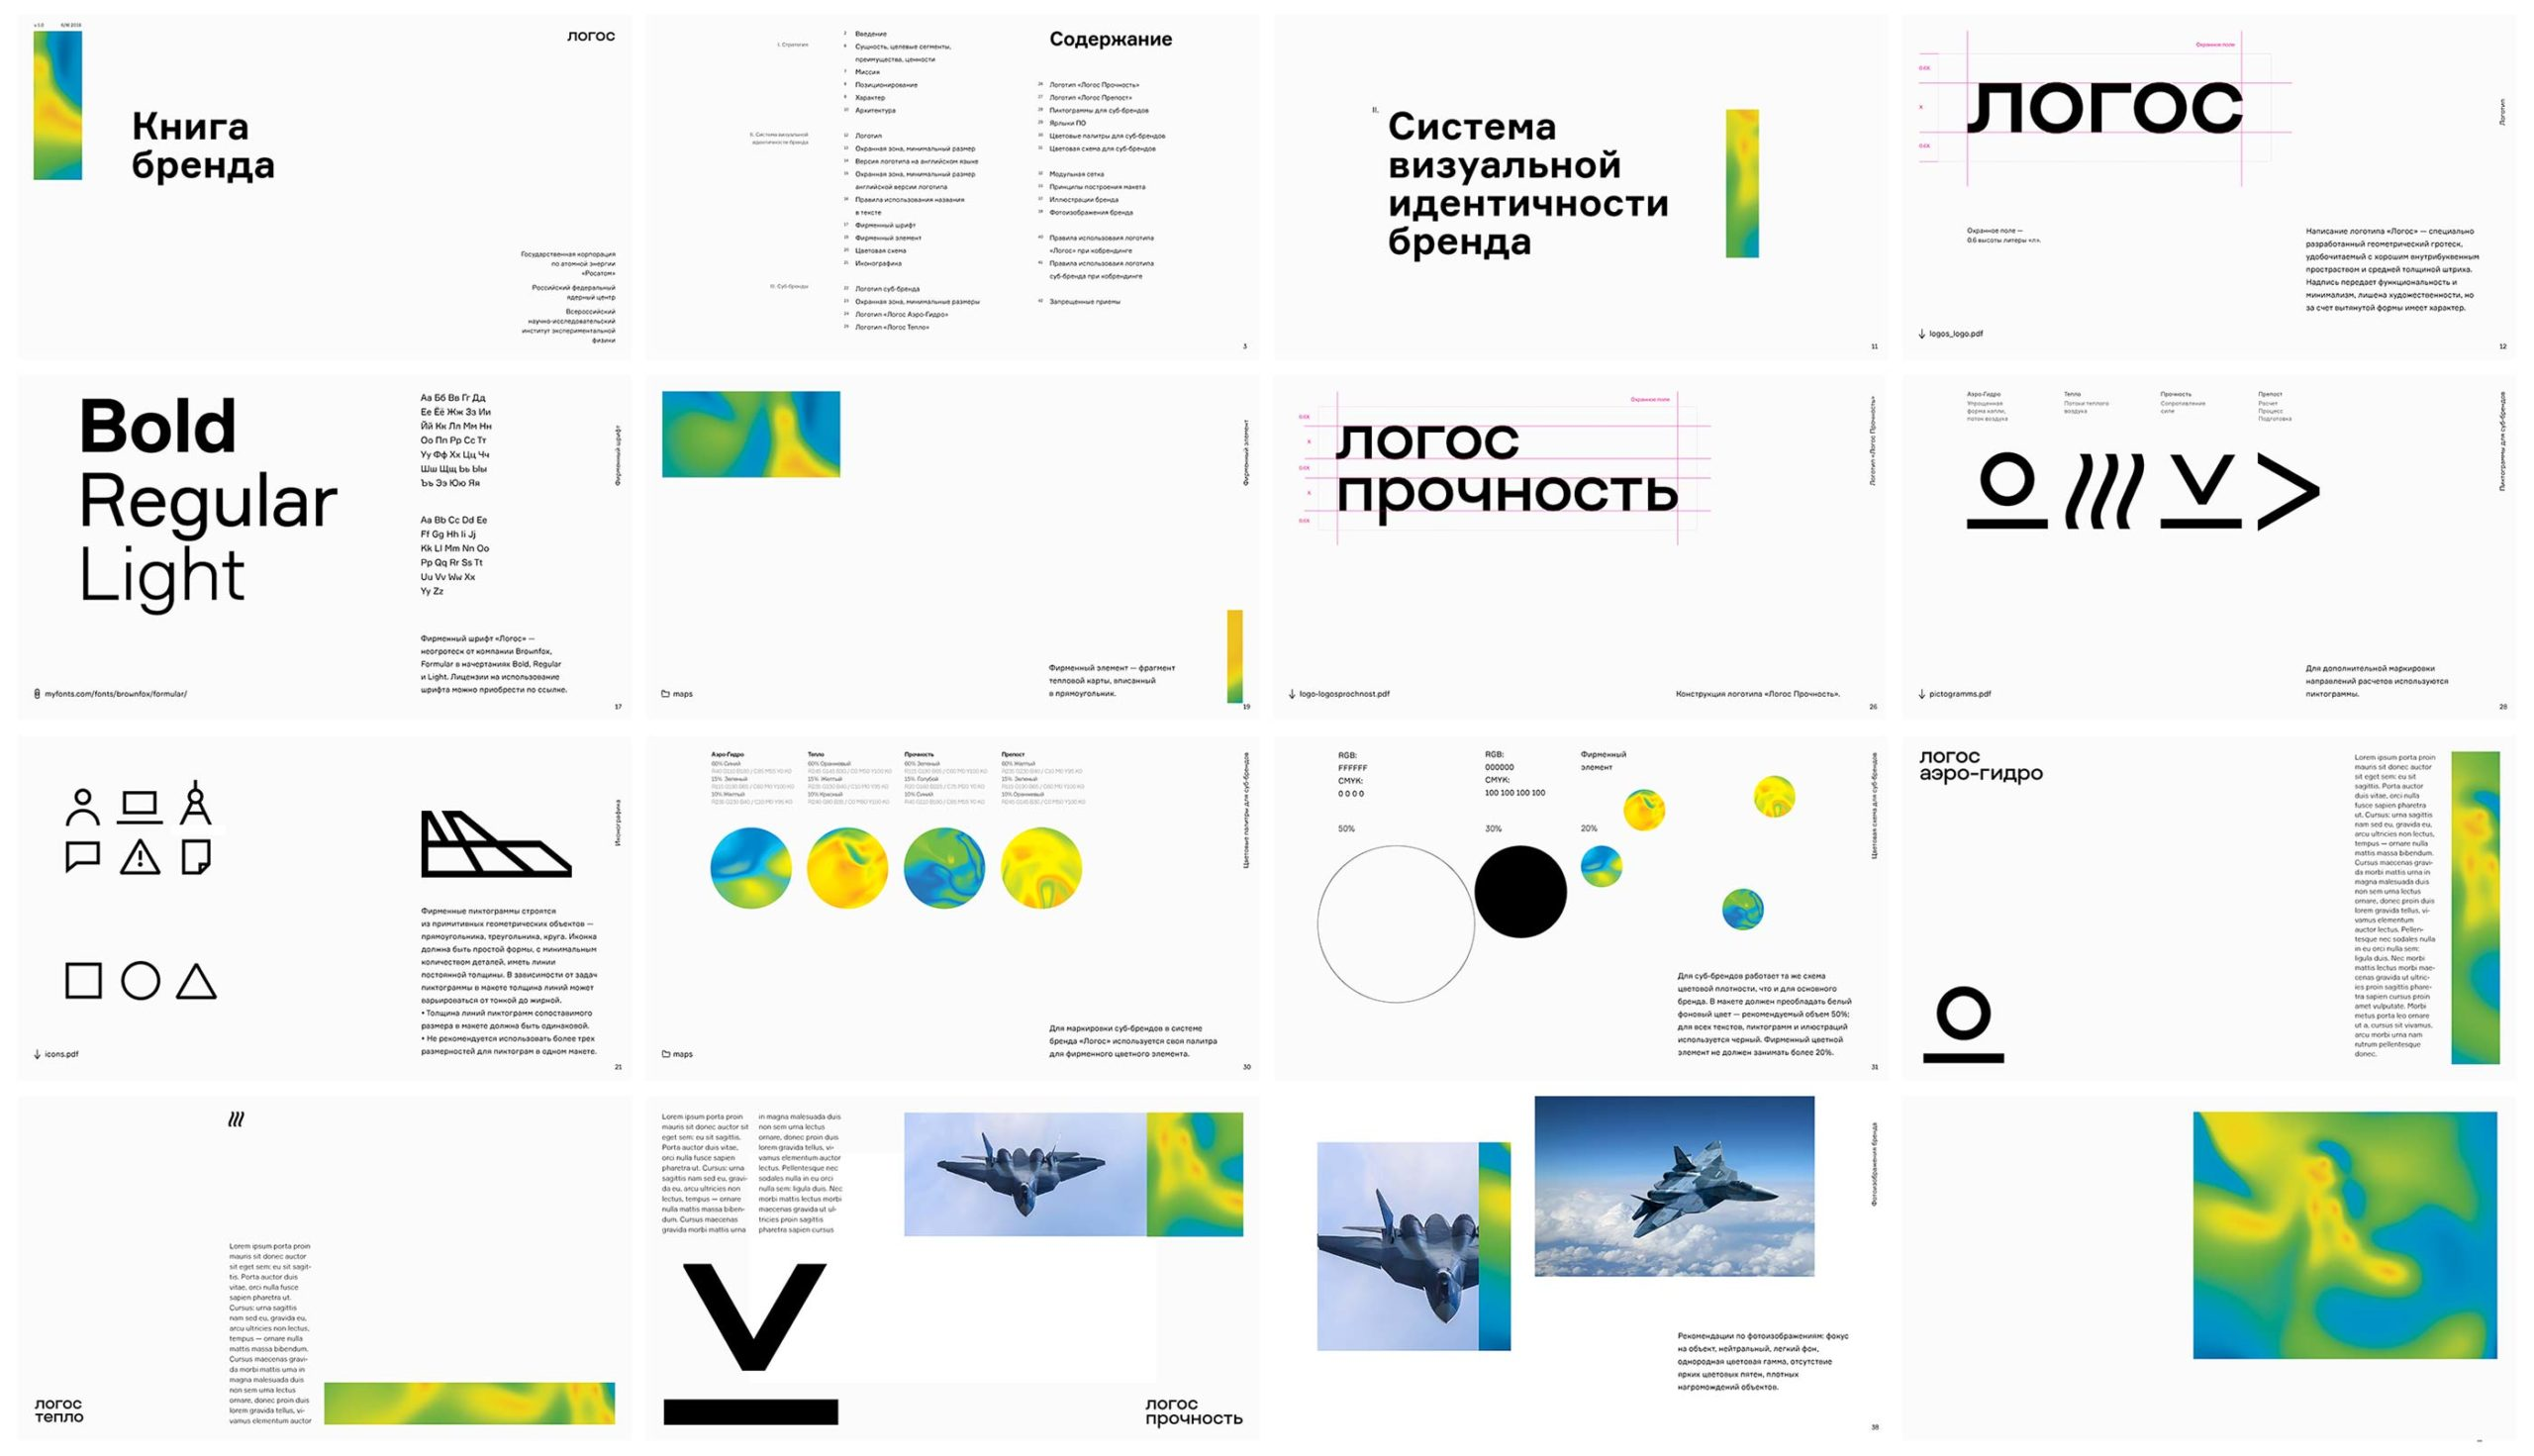 roma erohnovich graphic designer visual culture_trendland scaled